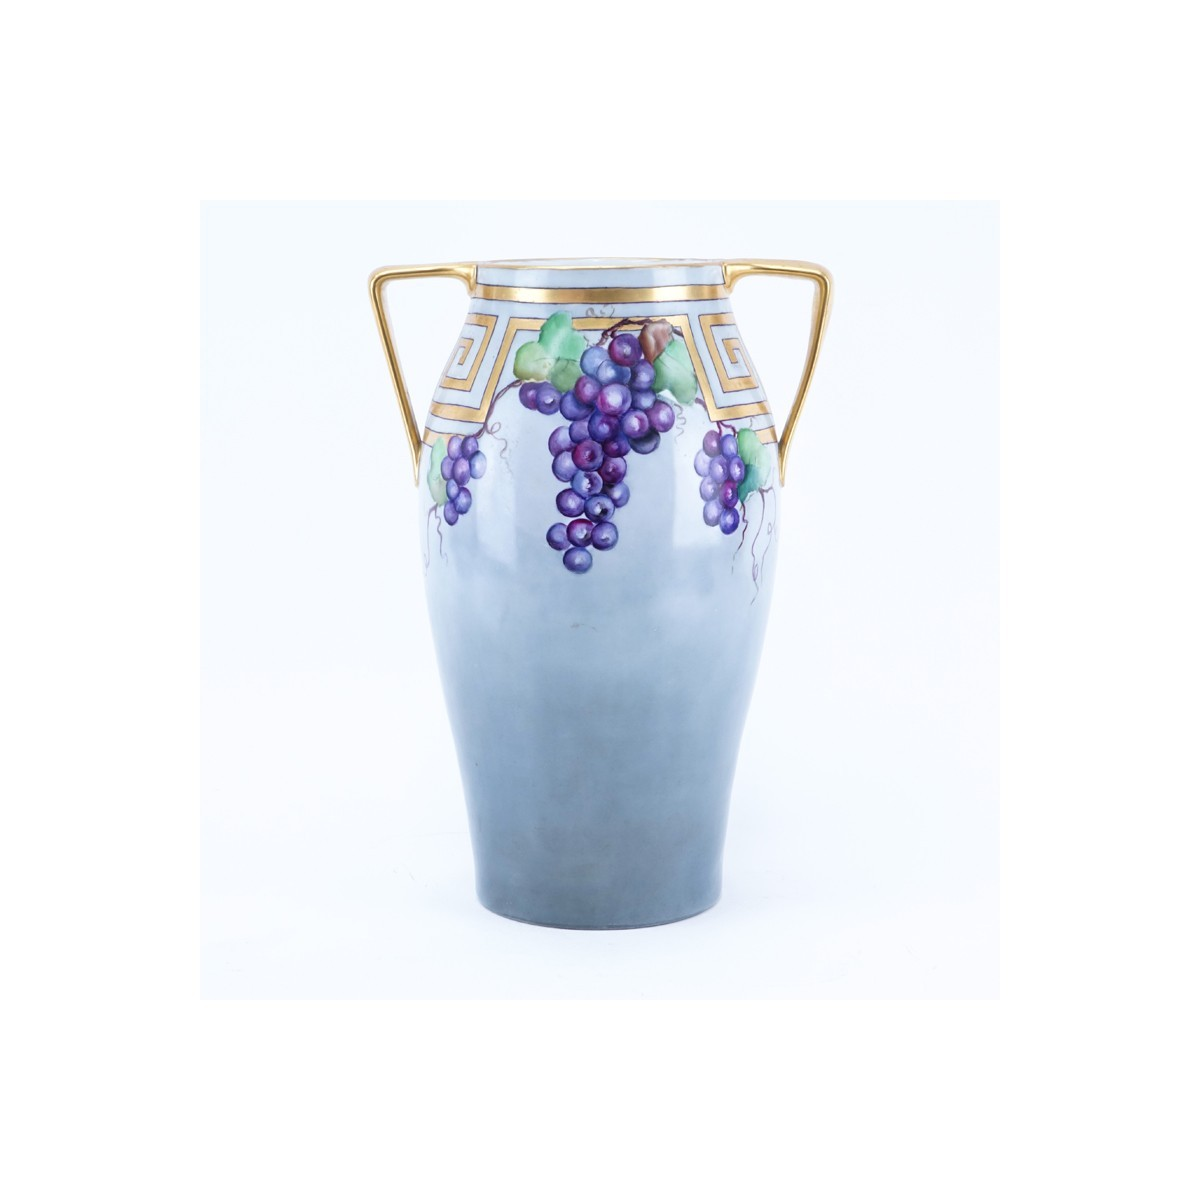 Lg T&V Limoges France Porcelain Blum Vase